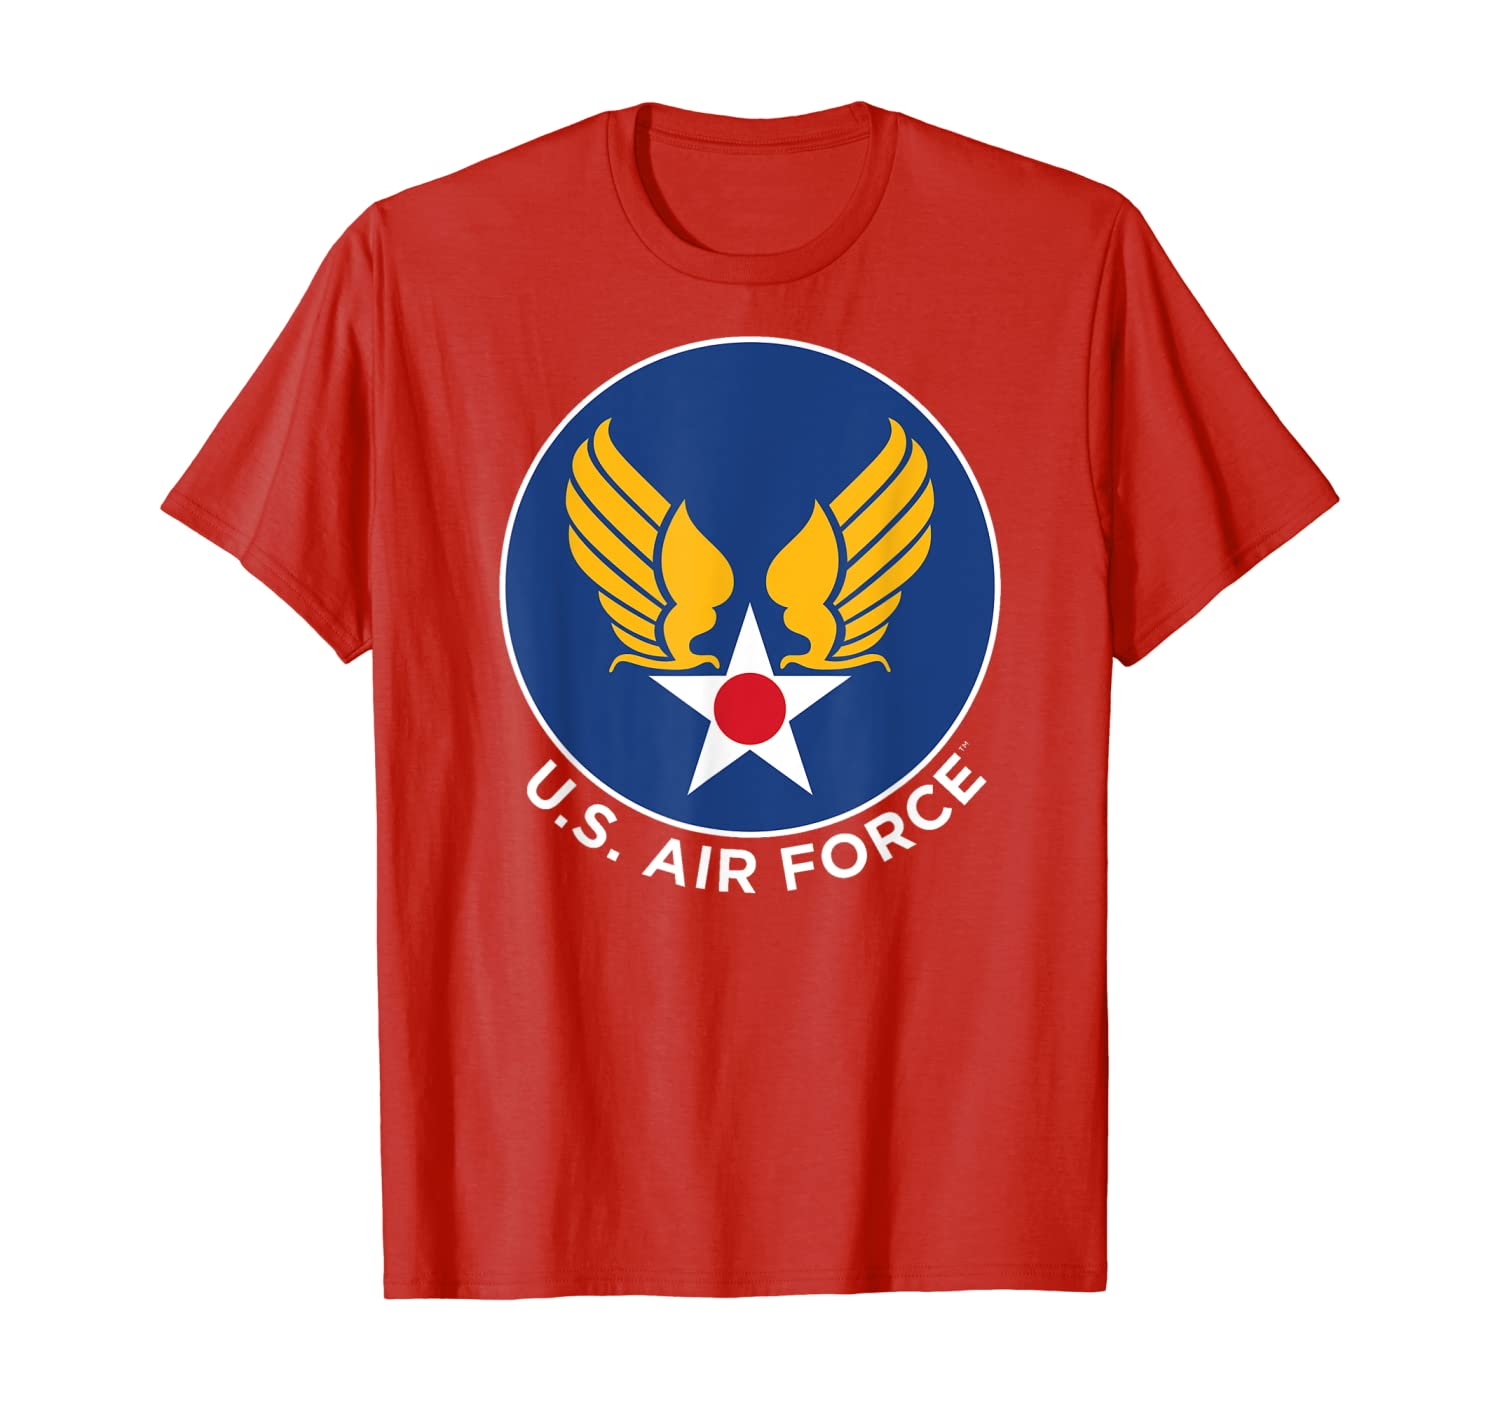 Amazon Com Marvel Captain Marvel U S Air Force Badge Graphic T Shirt Clothing Captain america's uniform were sets of uniforms used by captain steve rogers which served as his outfit during his superhero exploits. marvel captain marvel us air force badge graphic t shirt